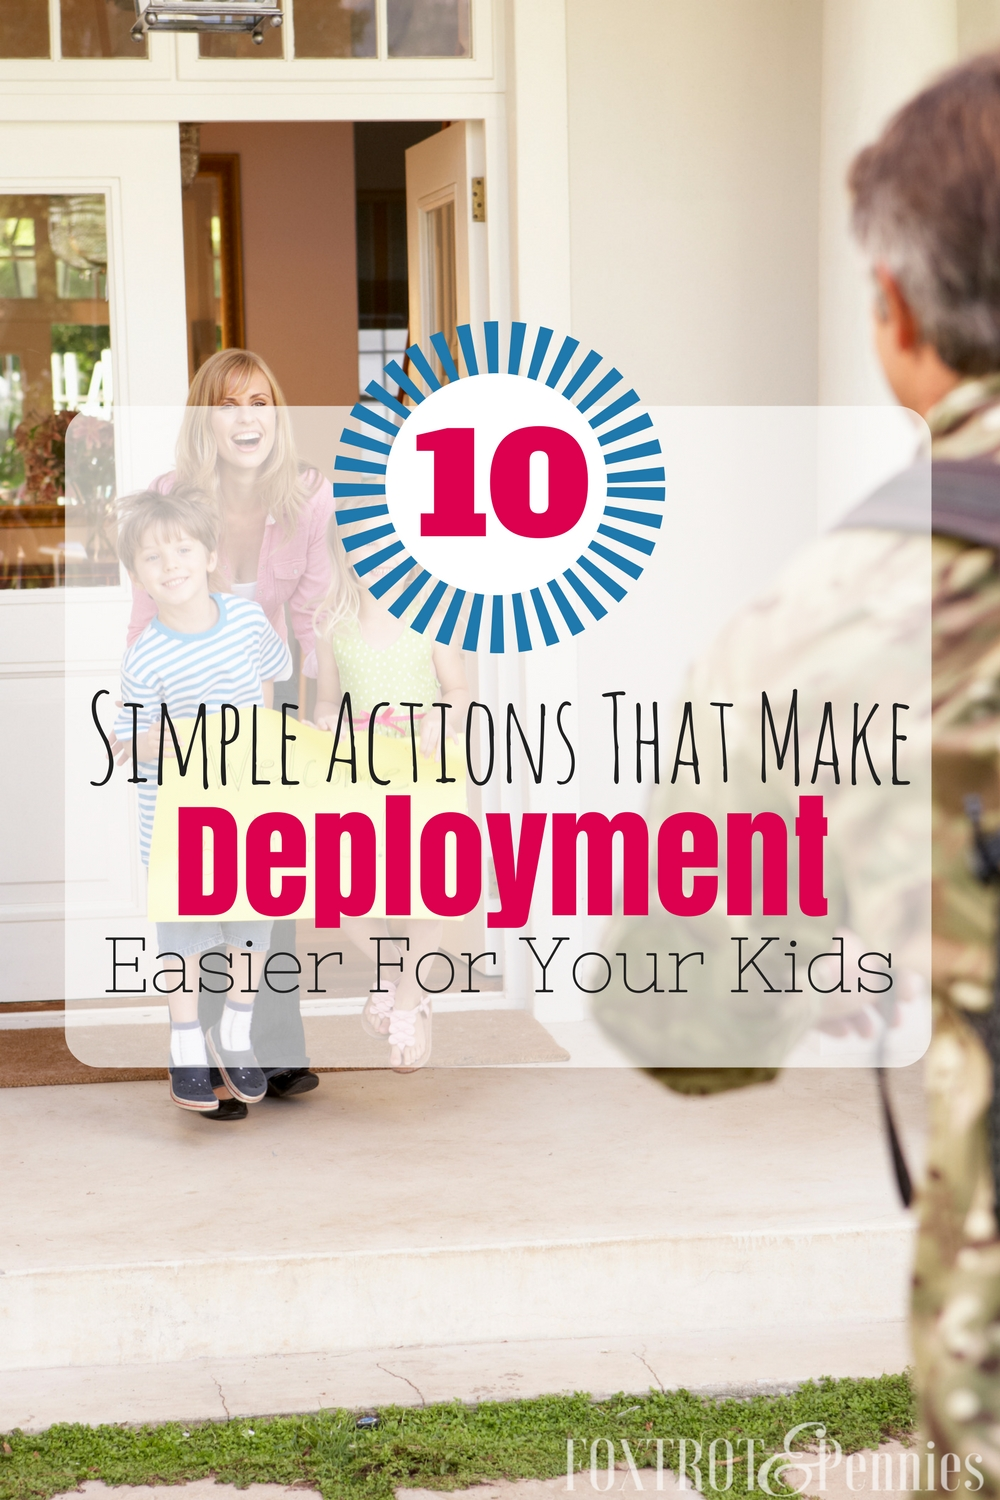 Yes! Finally a article with helpful and actionable things you can do to make the transition and pain of deployment a little bit easier for your kids. Great article!